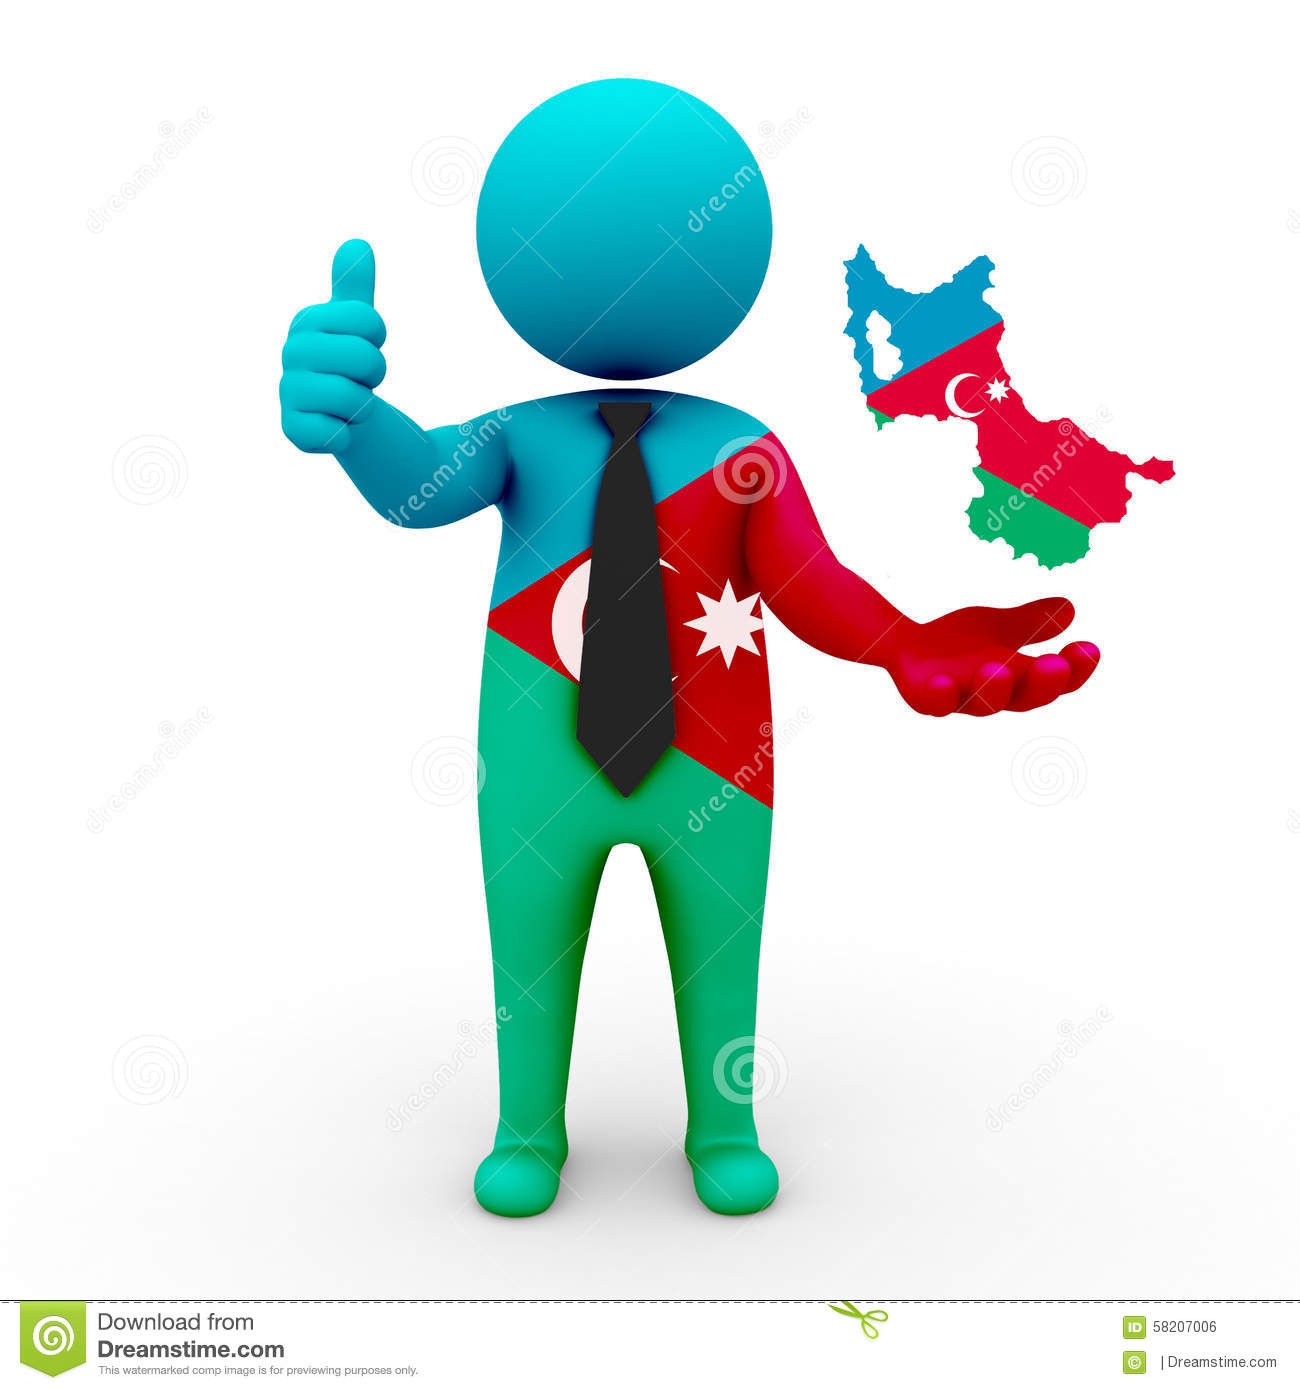 3d People Azerbaijan Iran Map Flag Of Azerbaijan Iran Turkic Council Azerbaijanis In Turkic Council Stock Illustration Illustration Of Founder Council 58207006